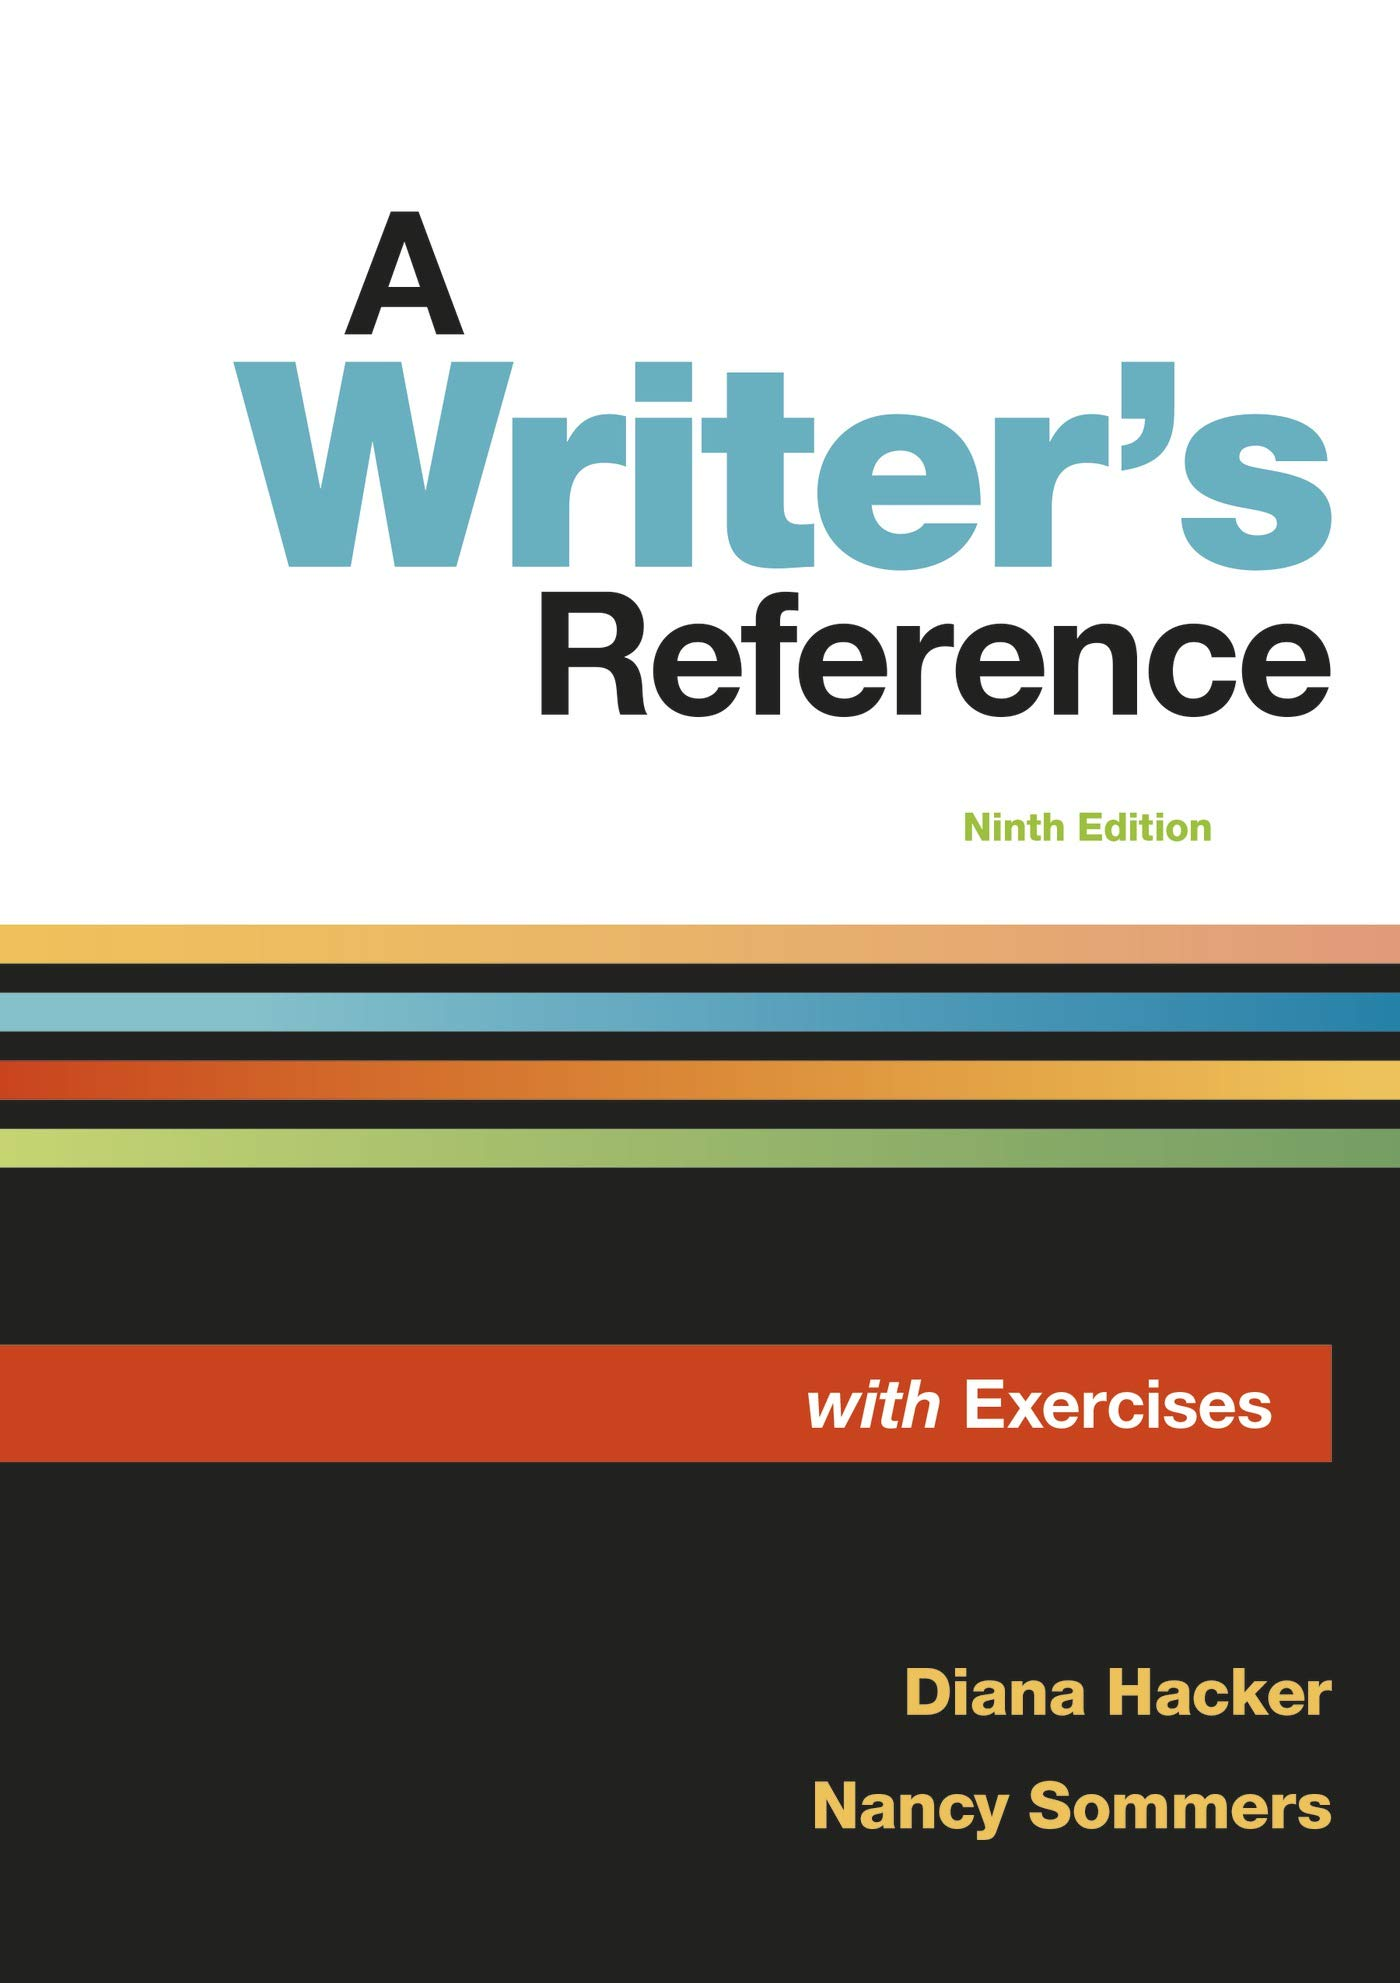 A Writer's Reference with Exercises by Bedford/St. Martin's